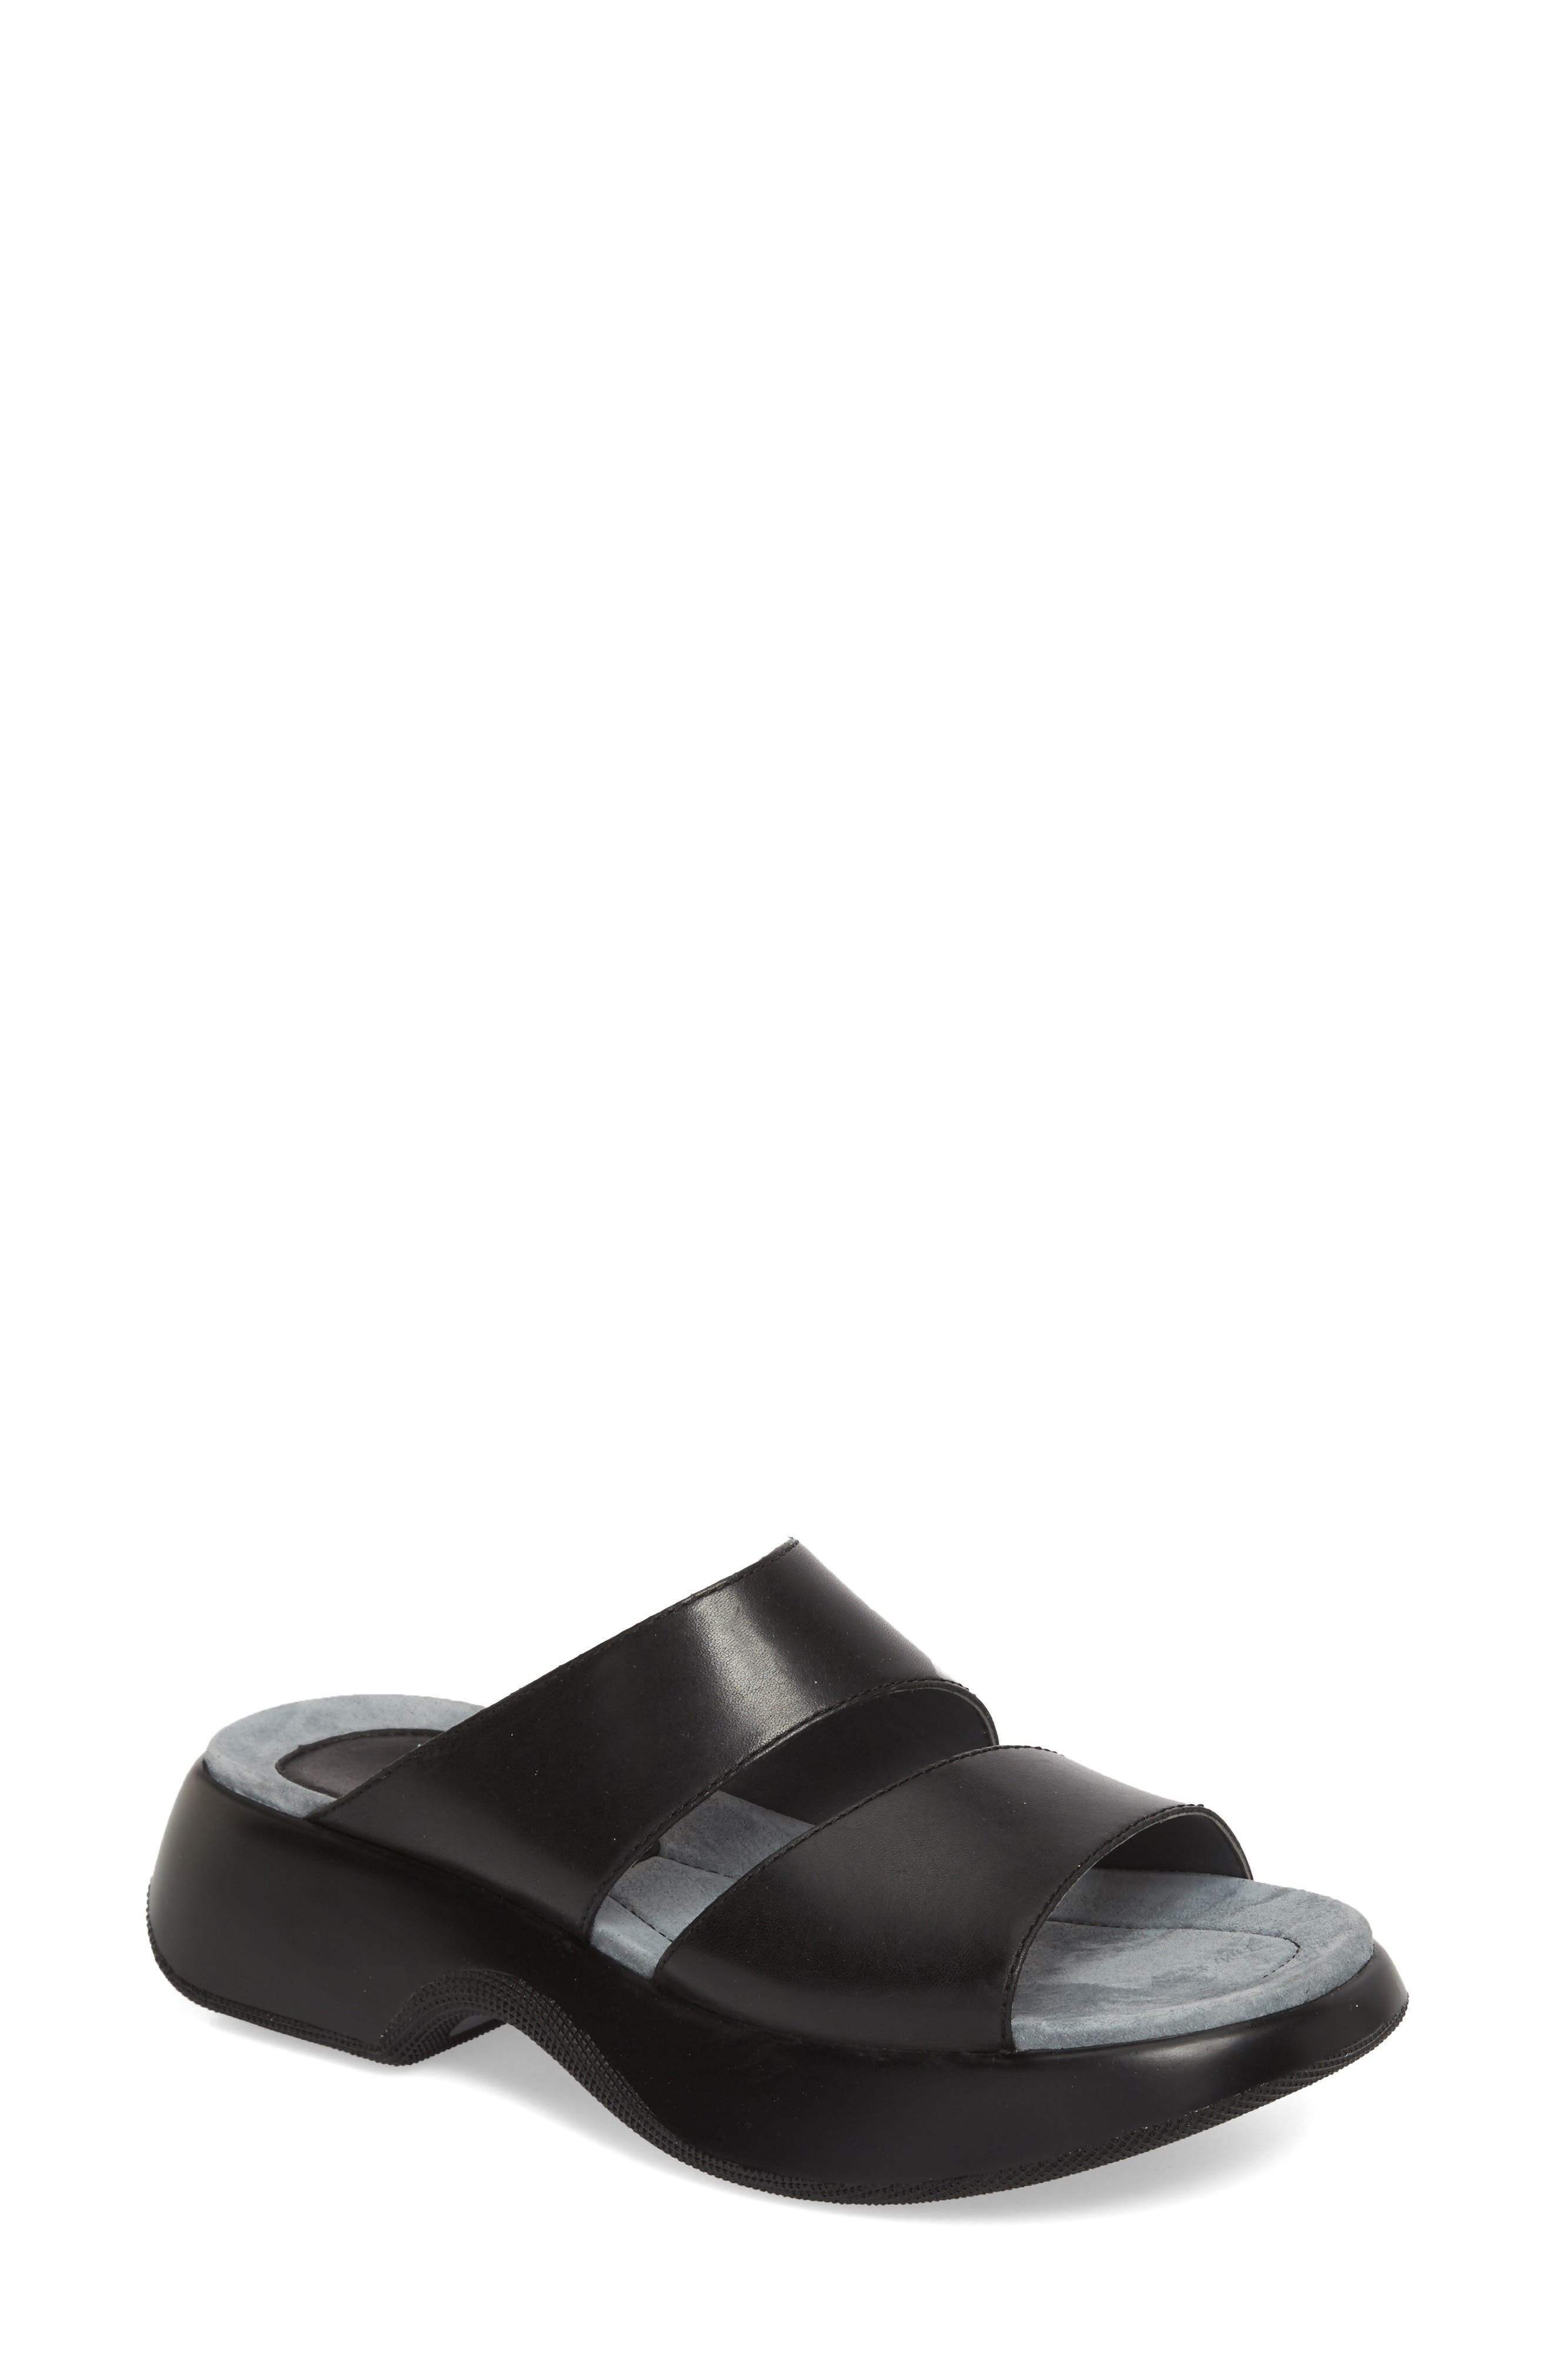 Women's Lana Slide Sandal